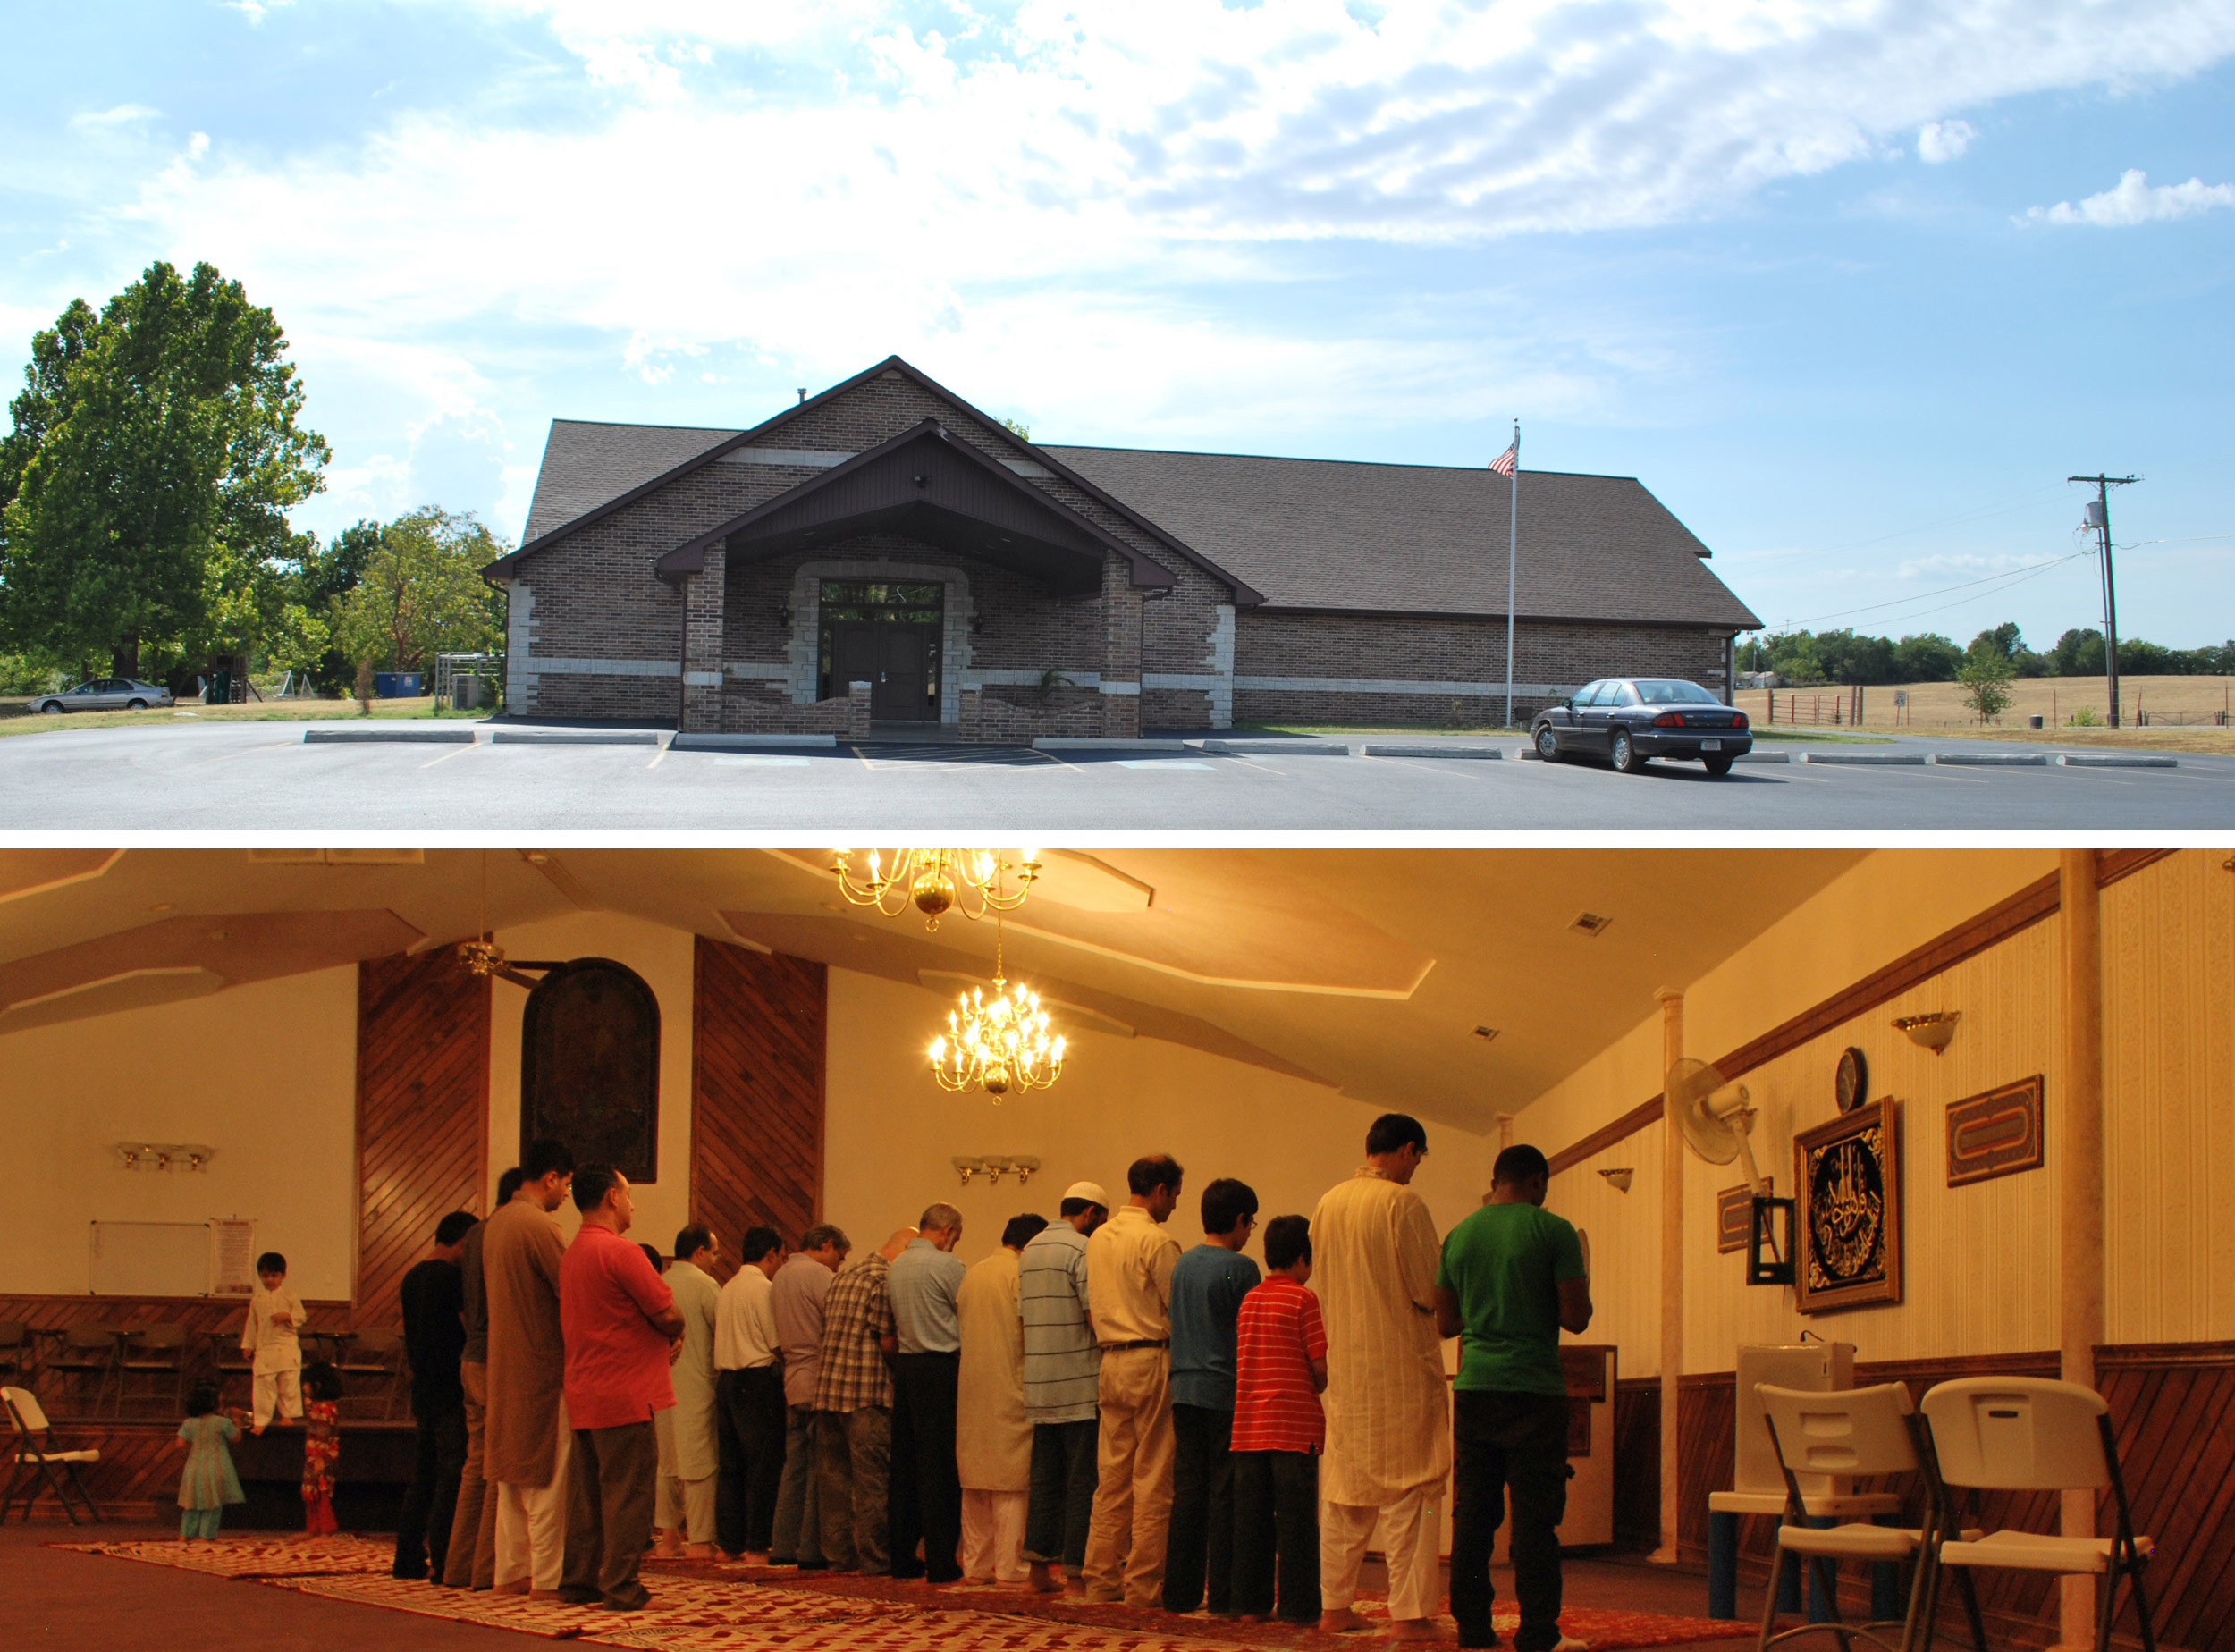 An evening of worship during Ramadan, here at the mosque after the July 4 arson attempt.